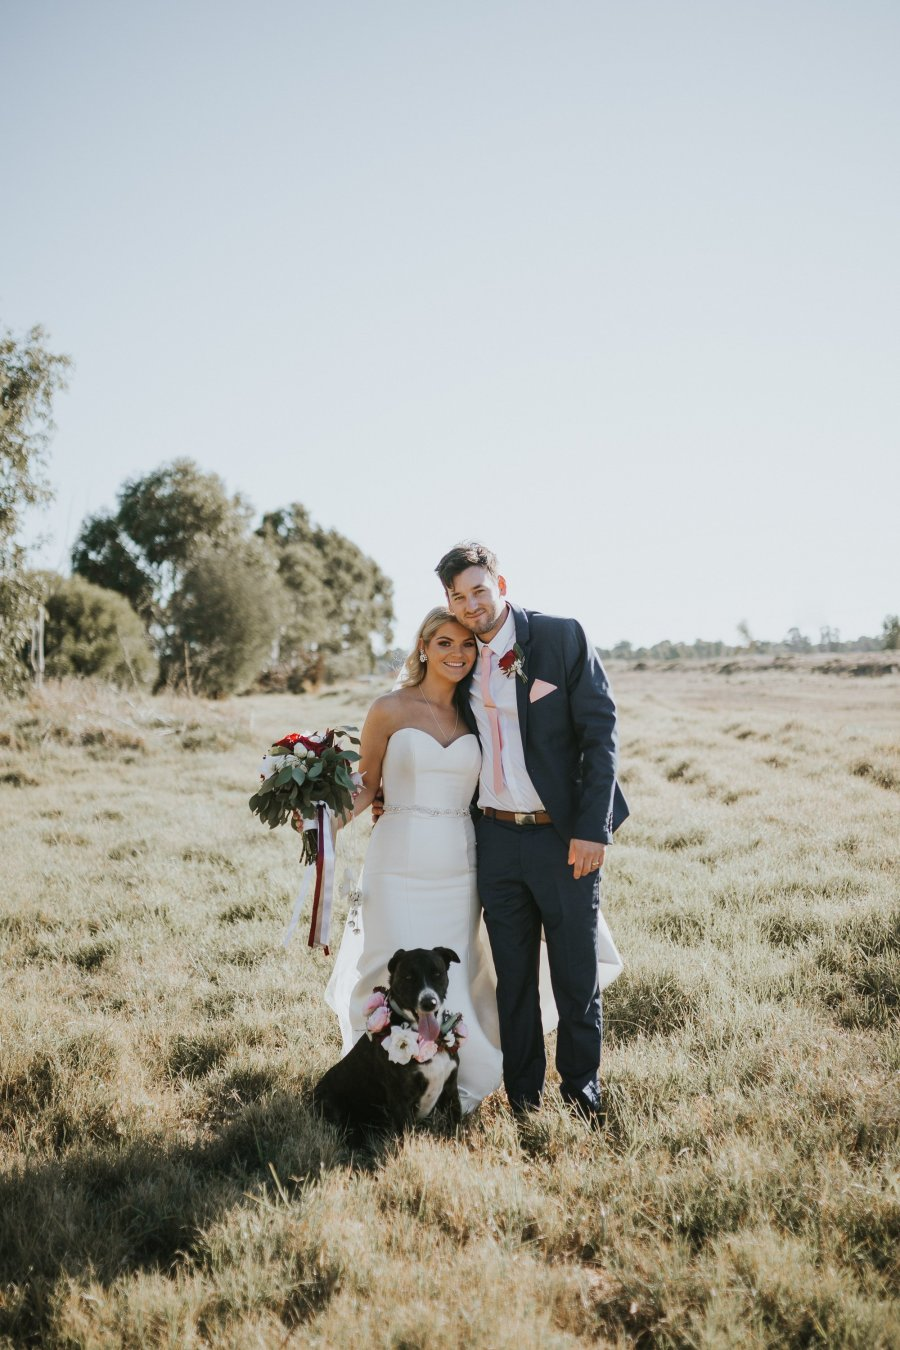 Perth Wedding Photographer | Ebony Blush Photography | Zoe Theiadore | K+T33